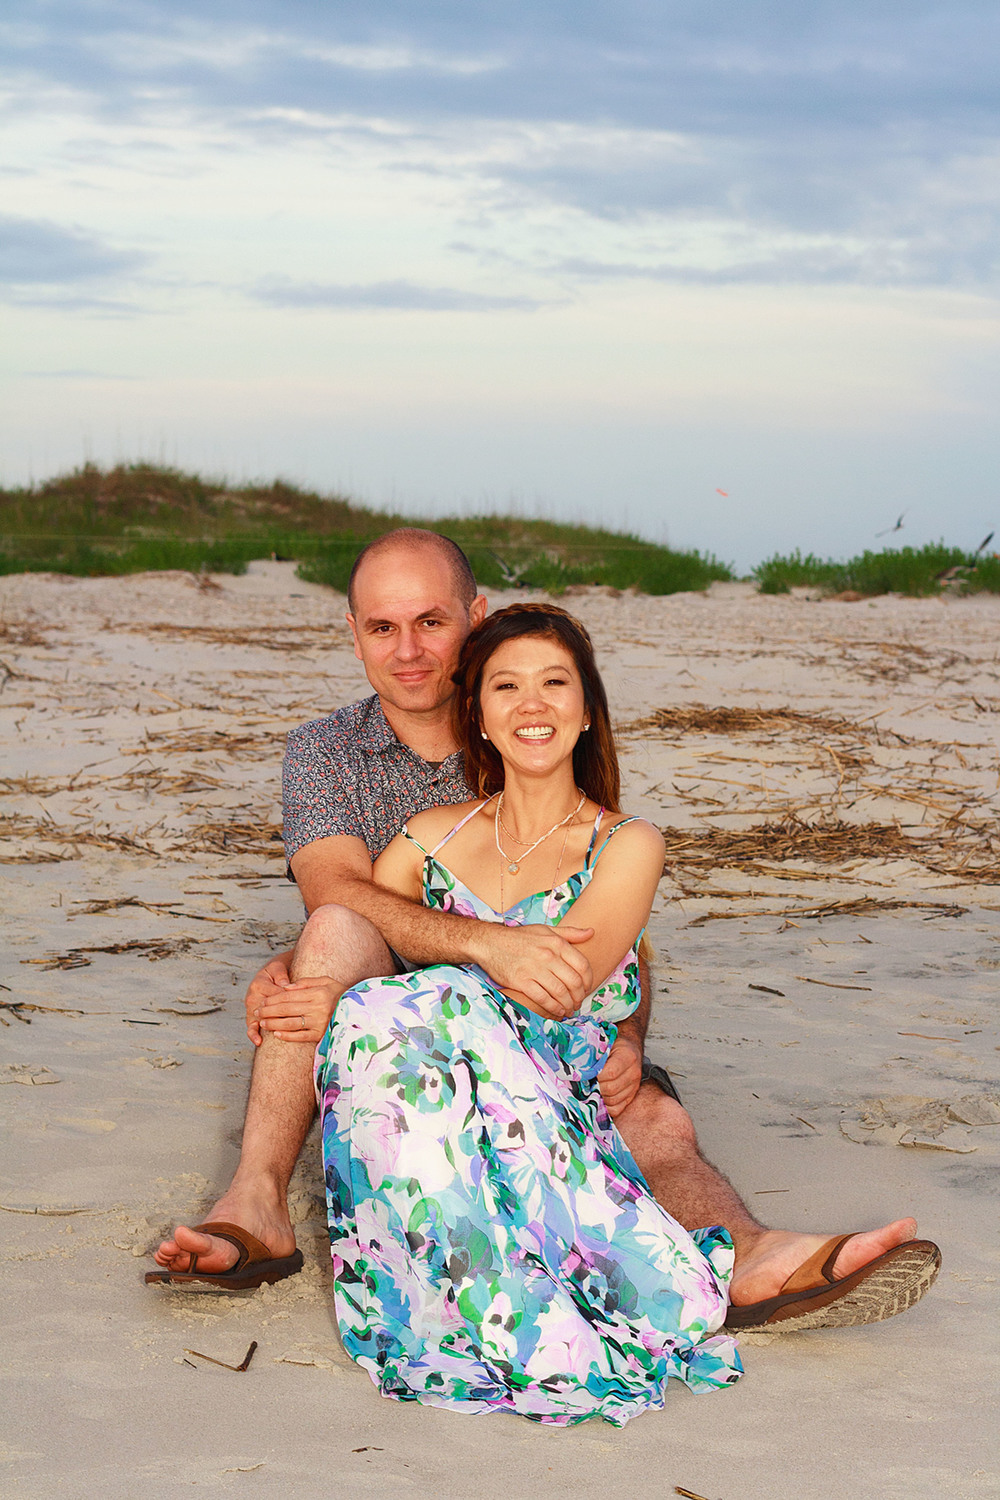 Airlie_Gardens_Engagement_Photography_Brian_&_Amy_66.jpg